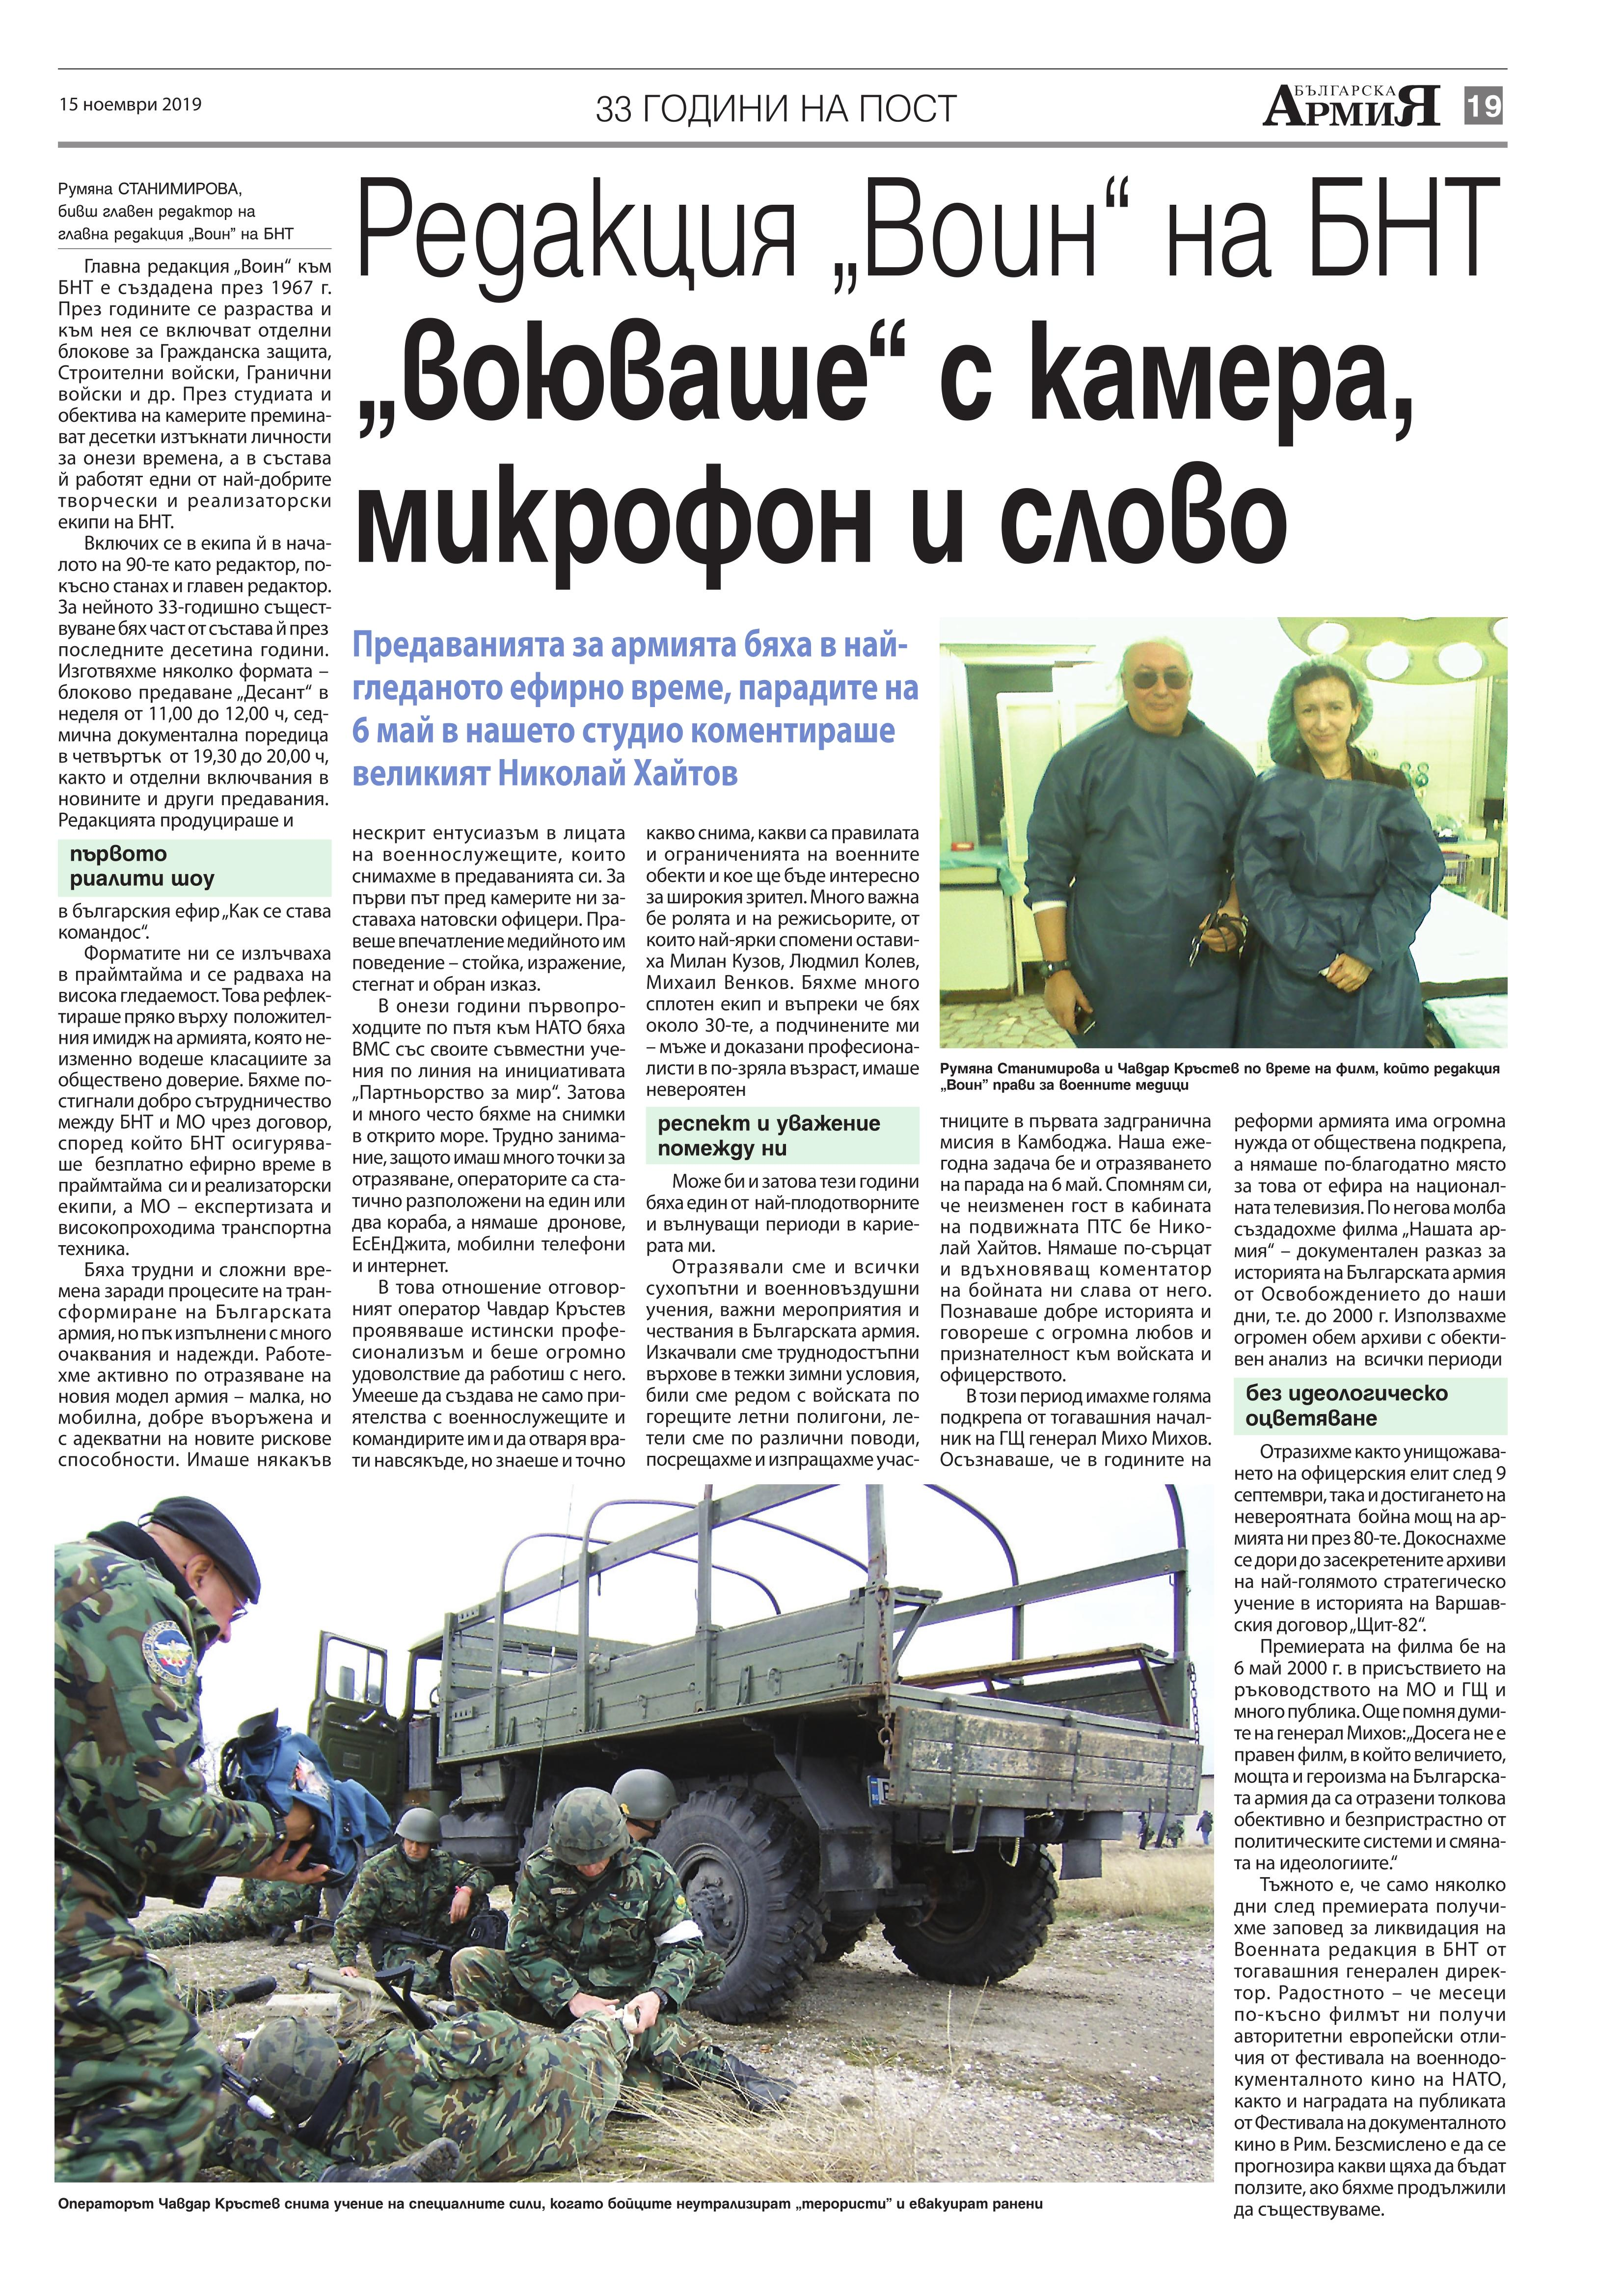 https://armymedia.bg/wp-content/uploads/2015/06/19.page1_-117.jpg